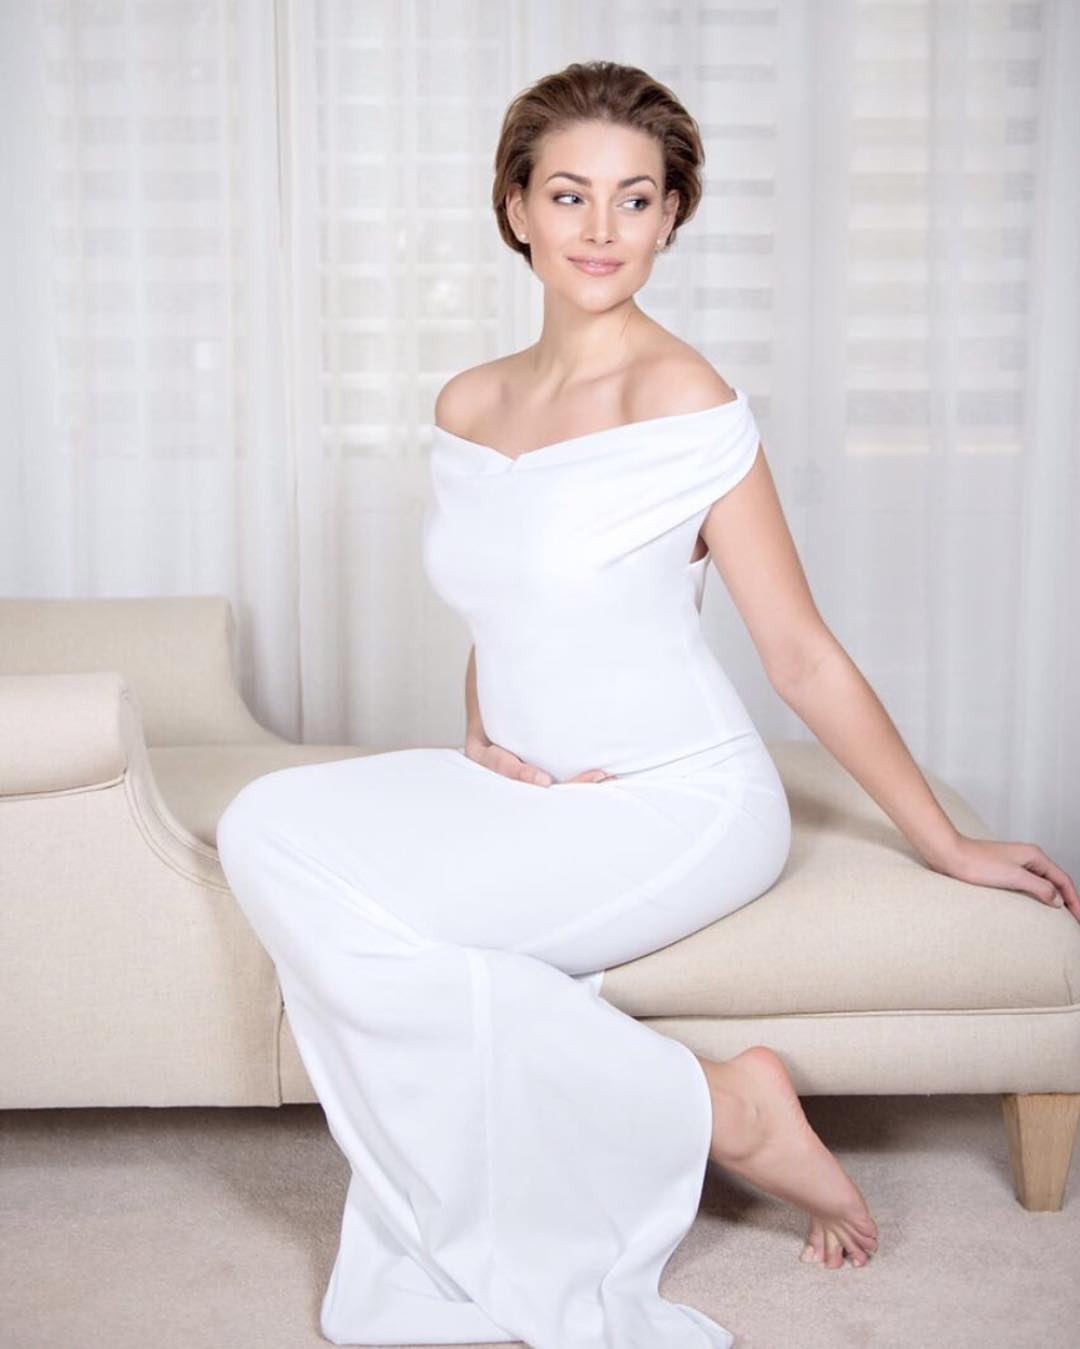 Former Miss World Rolene Strauss confirms pregnancy via YouTube game